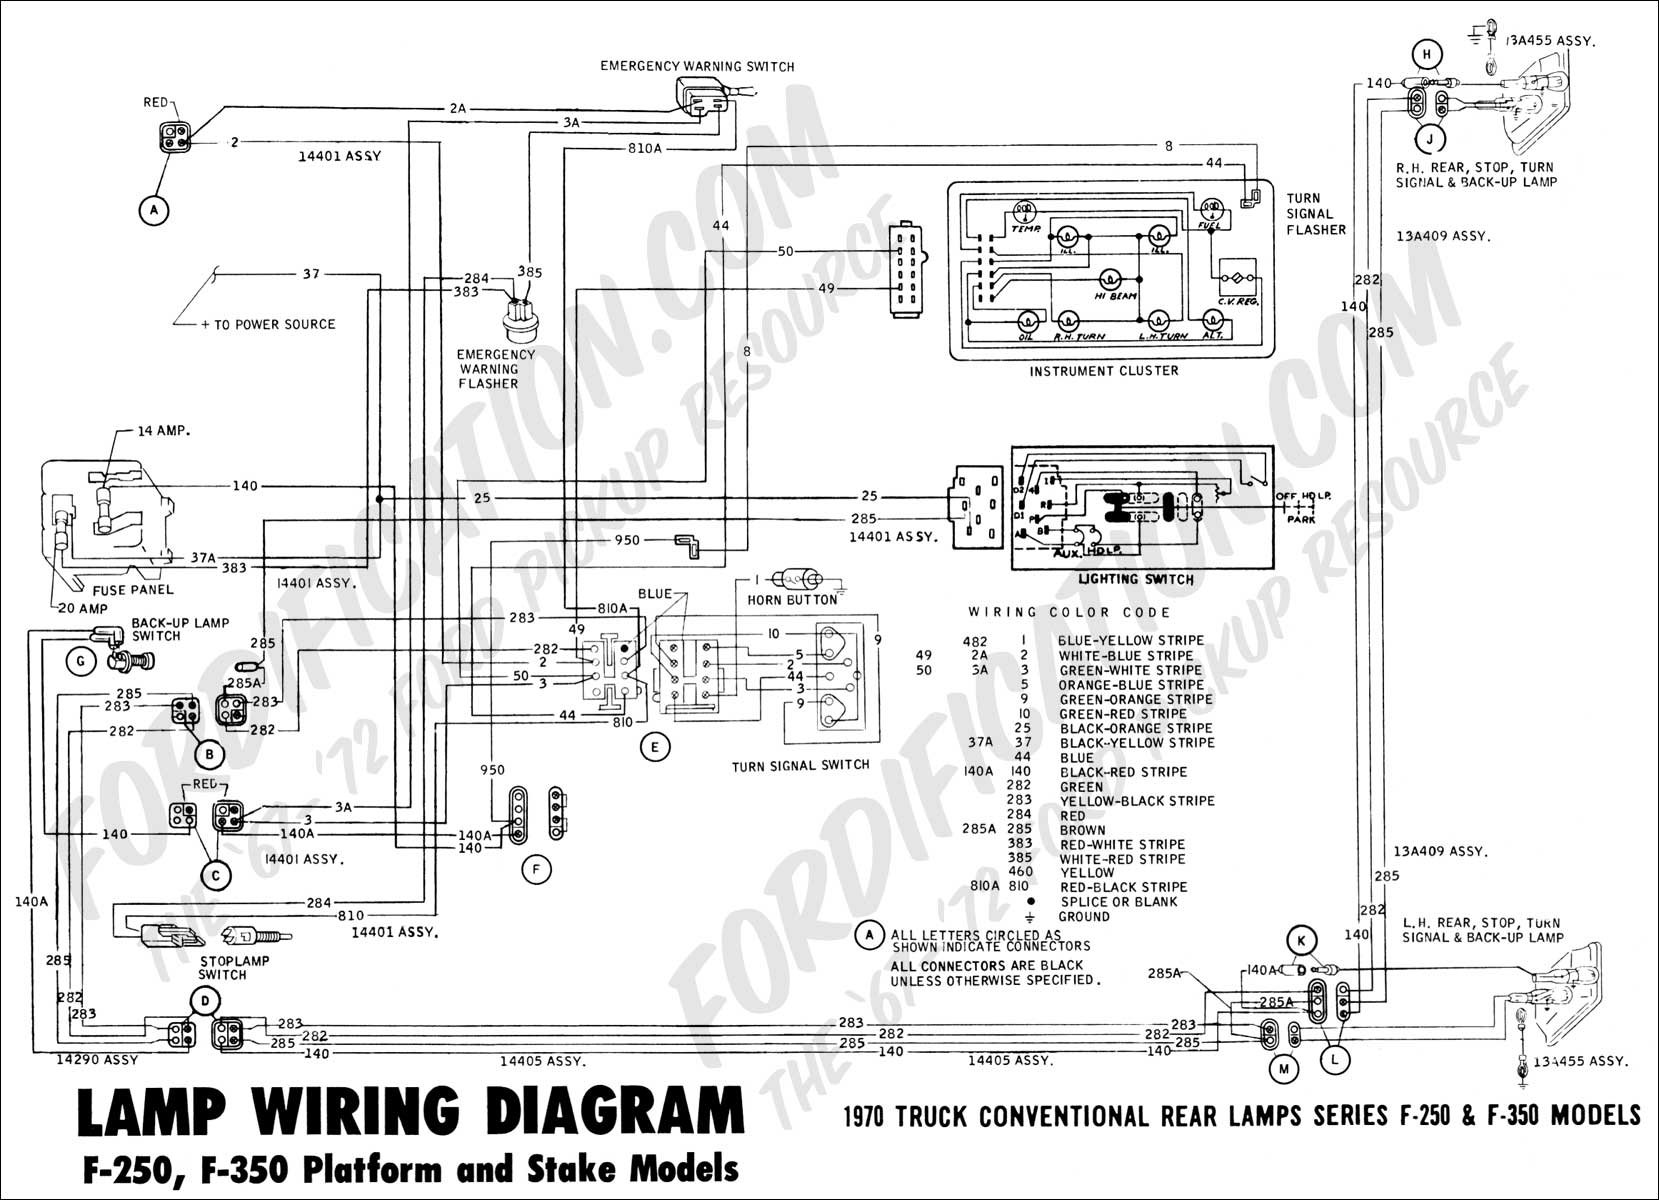 [DIAGRAM_1CA]  Ford Truck Technical Drawings and Schematics - Section H - Wiring Diagrams | 1986 Ford F 150 Headlight Wiring |  | FORDification.com